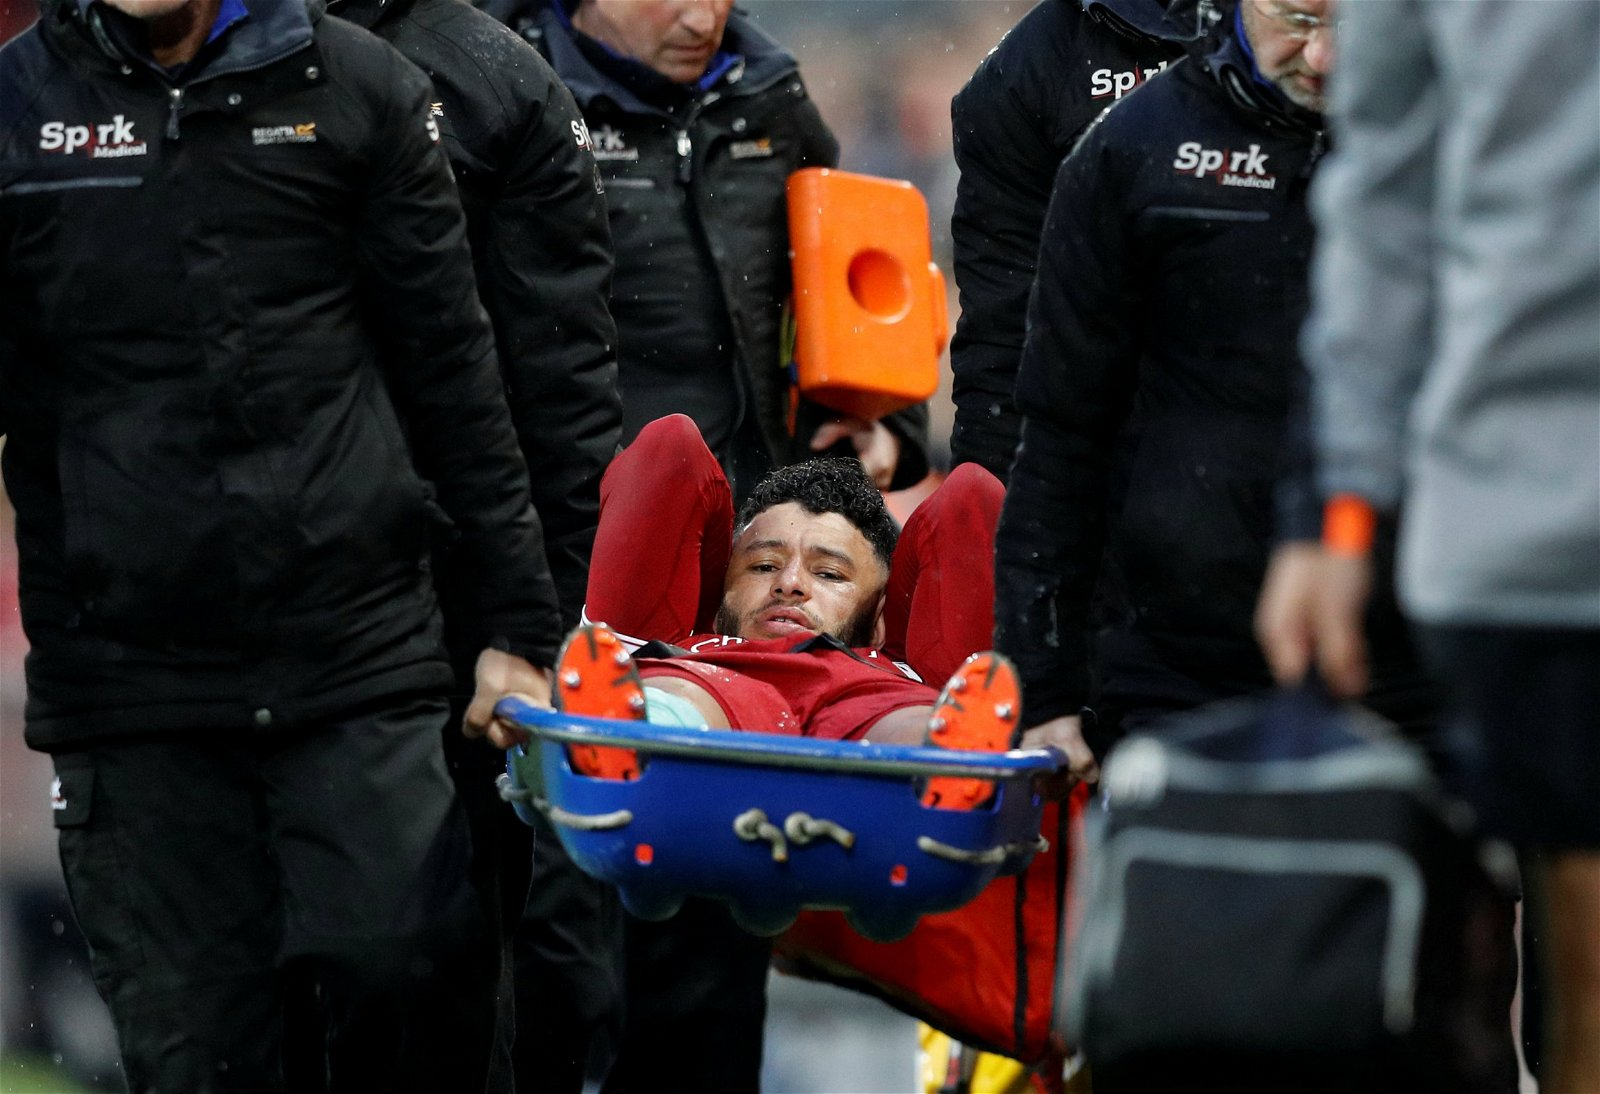 Liverpool's Alex Oxlade-Chamberlain is carried off on a stretcher against Roma